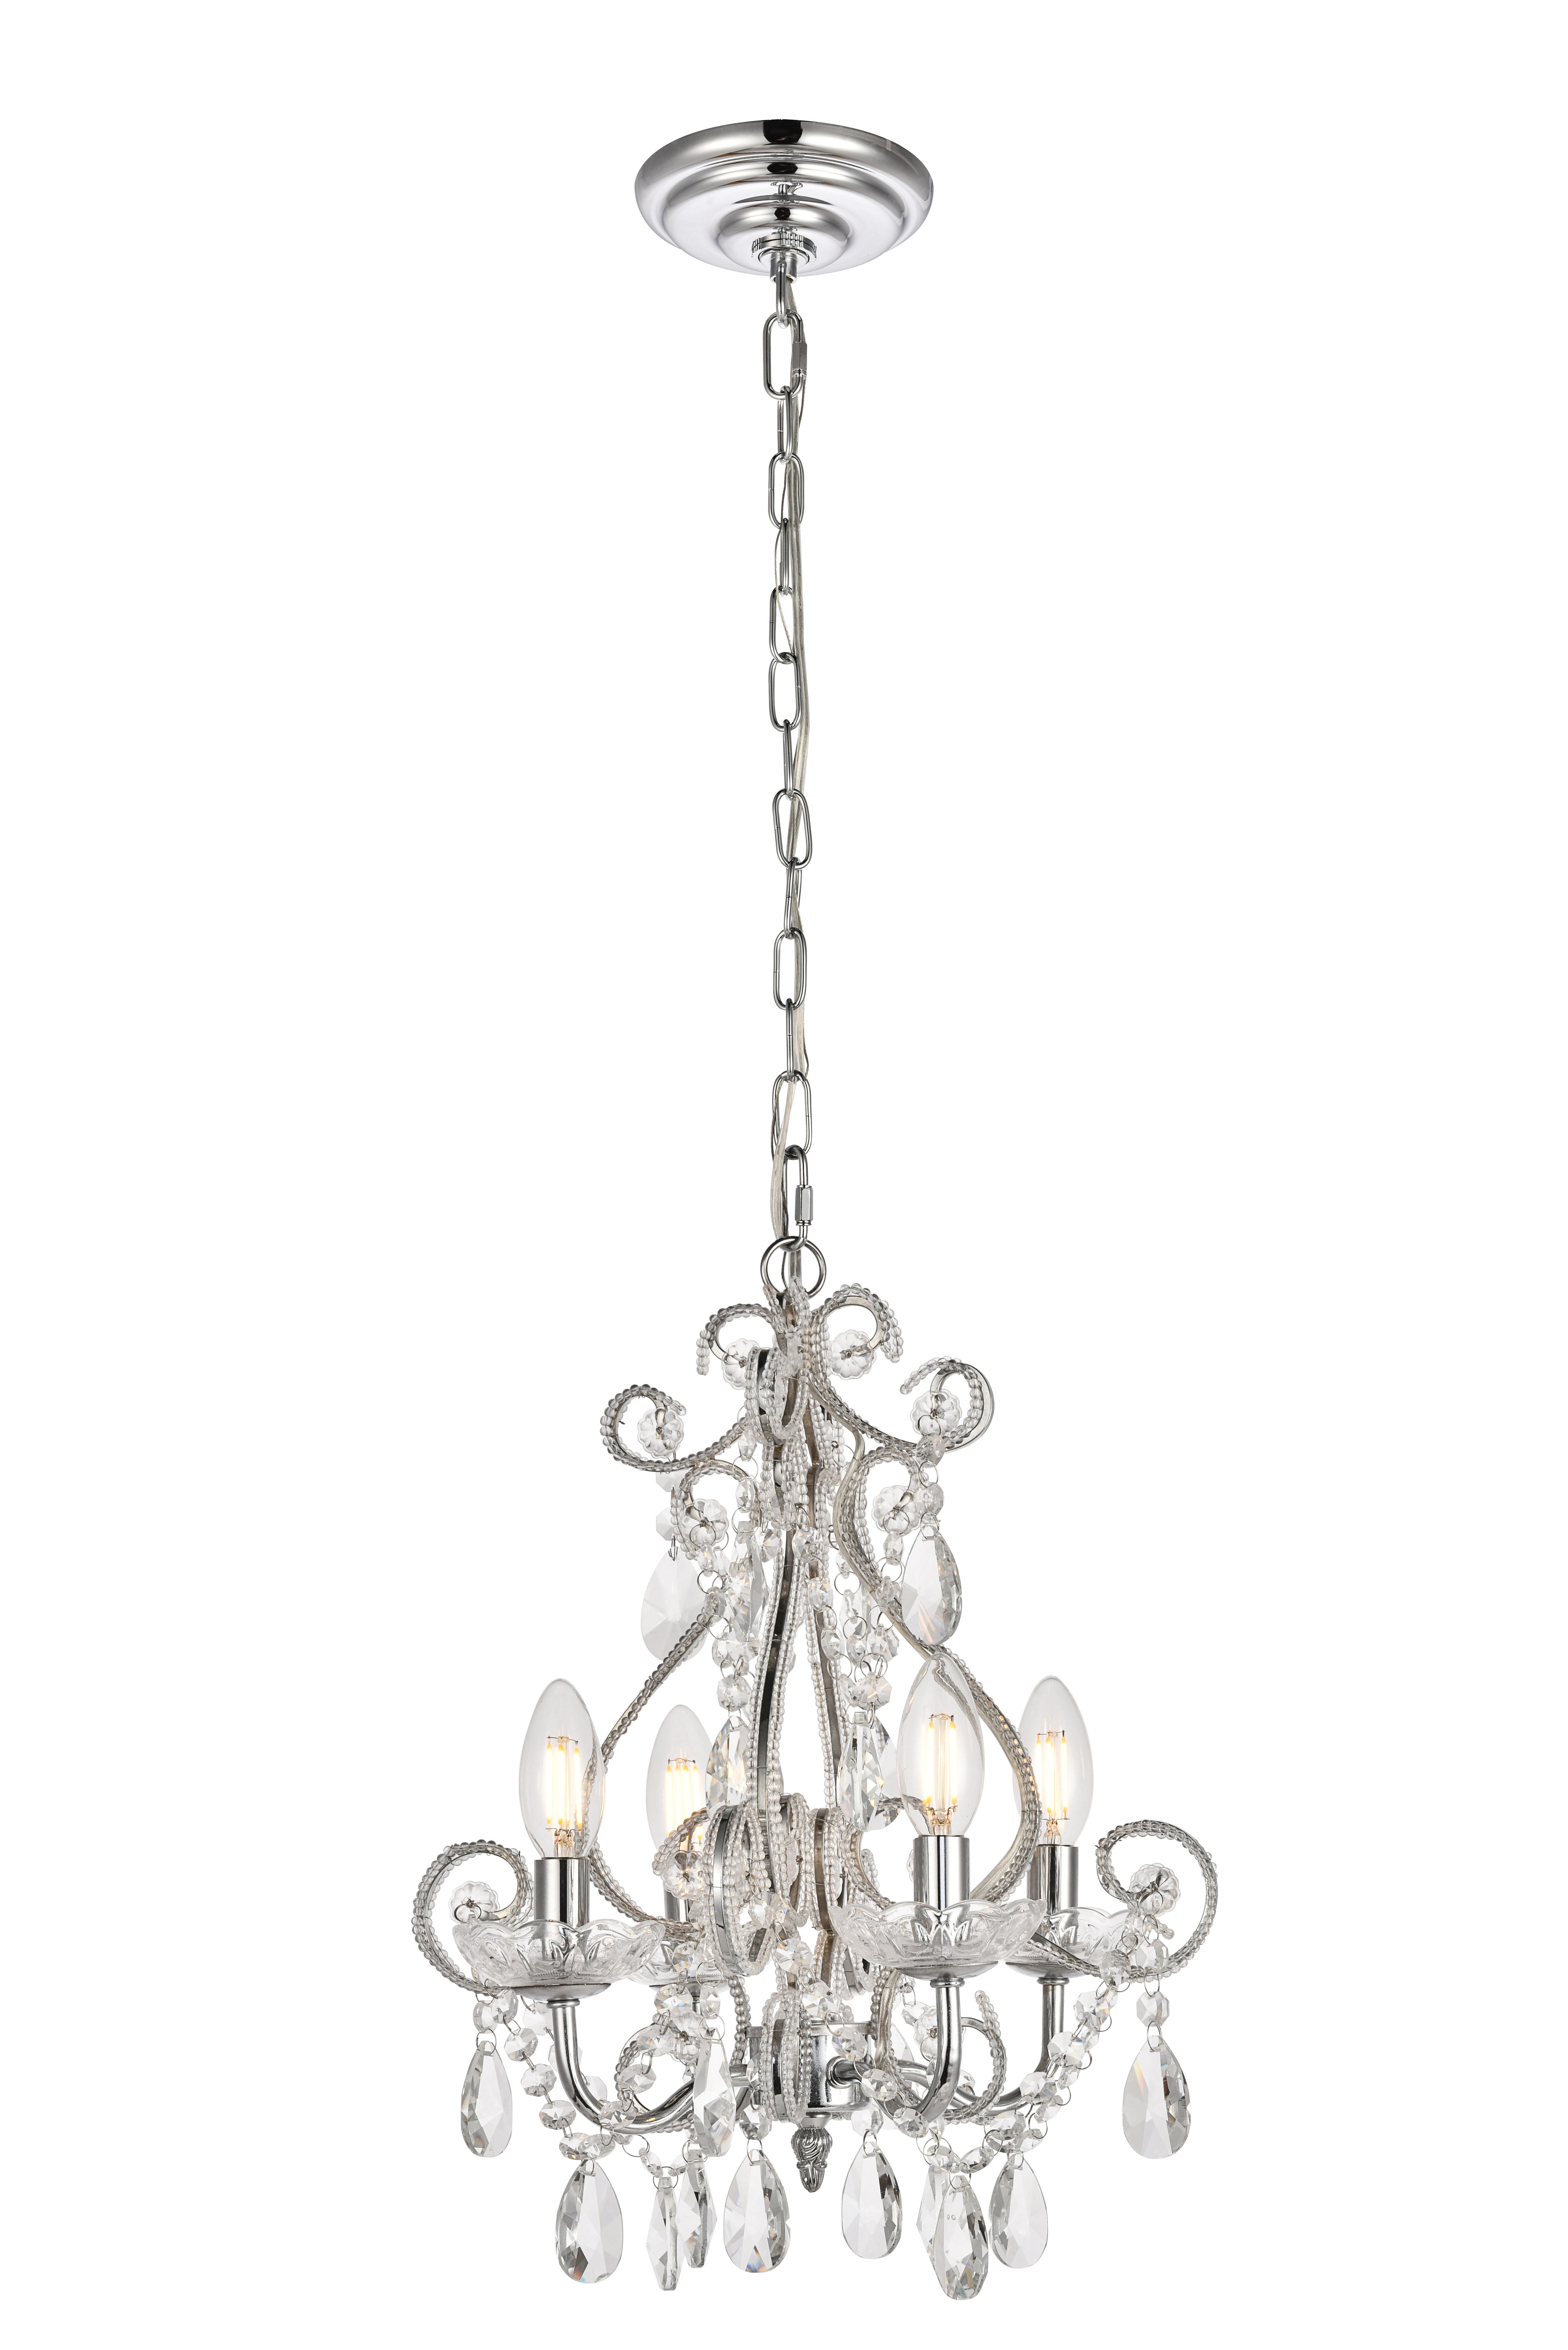 Burcott 4 Light Candle Style Chandelier Throughout Aldora 4 Light Candle Style Chandeliers (View 3 of 30)